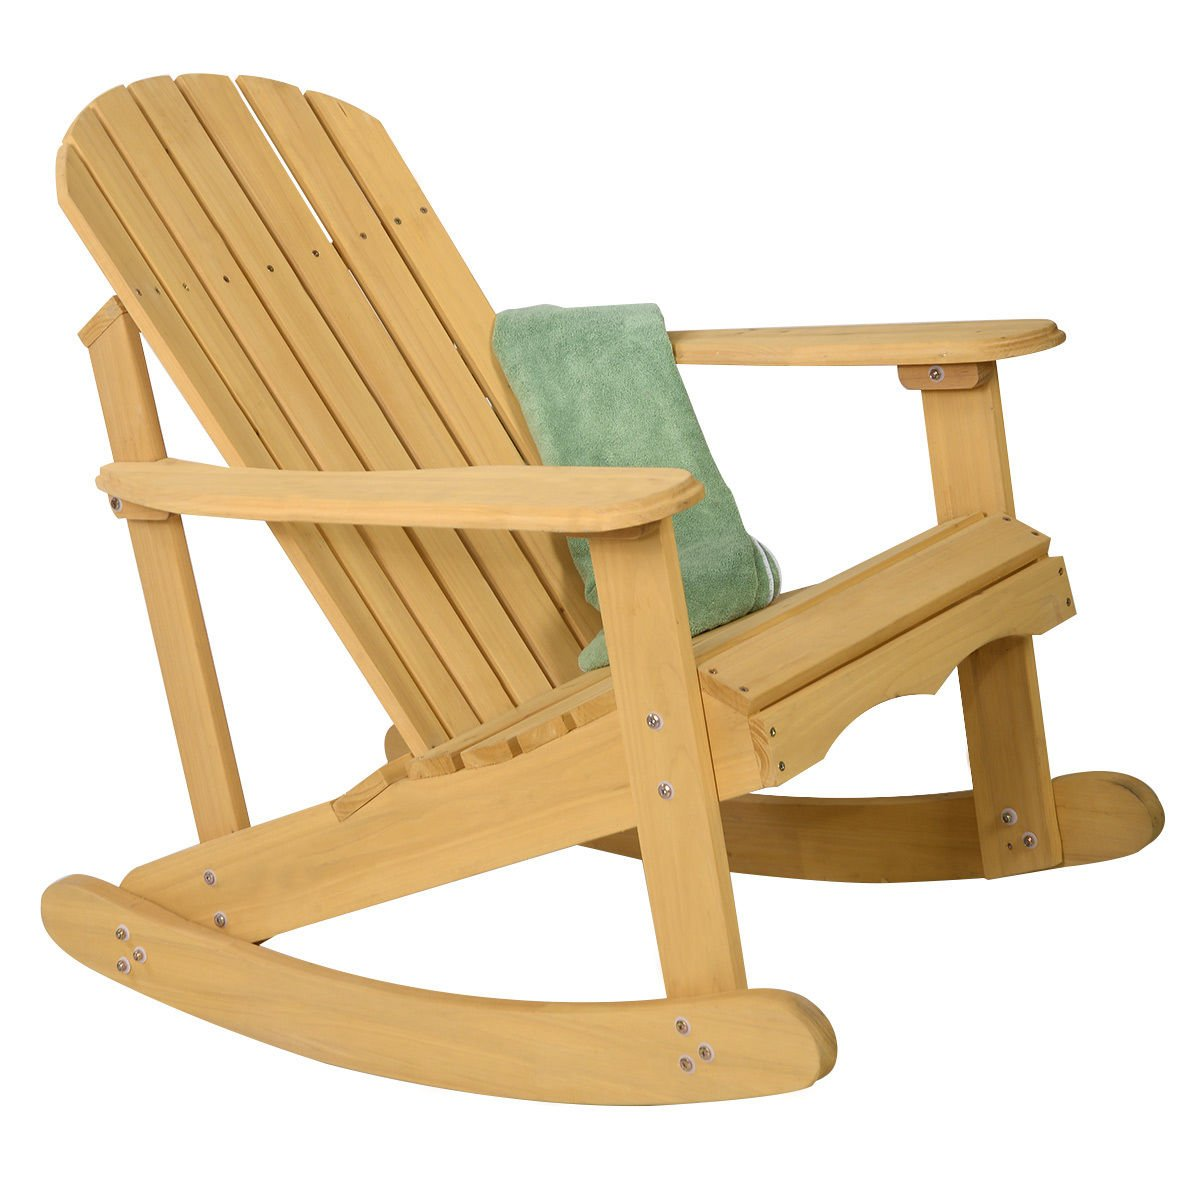 giantex adirondack chair outdoor natural fir wood rocking chair patio deck garde ebay. Black Bedroom Furniture Sets. Home Design Ideas